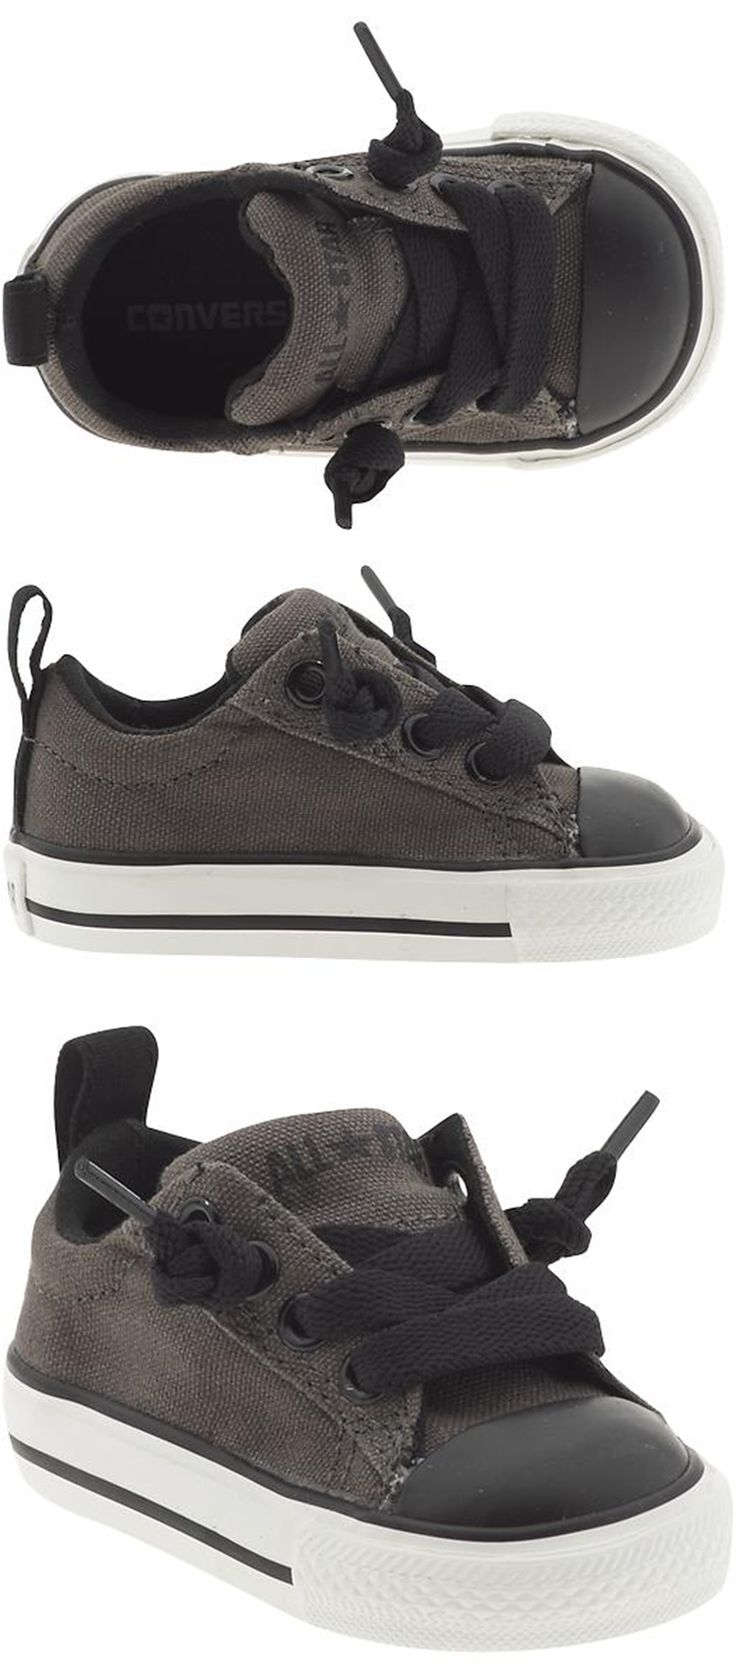 Baby Chuck Taylor All Star Street Ox in Charcoal/Black by Converse - Adorable